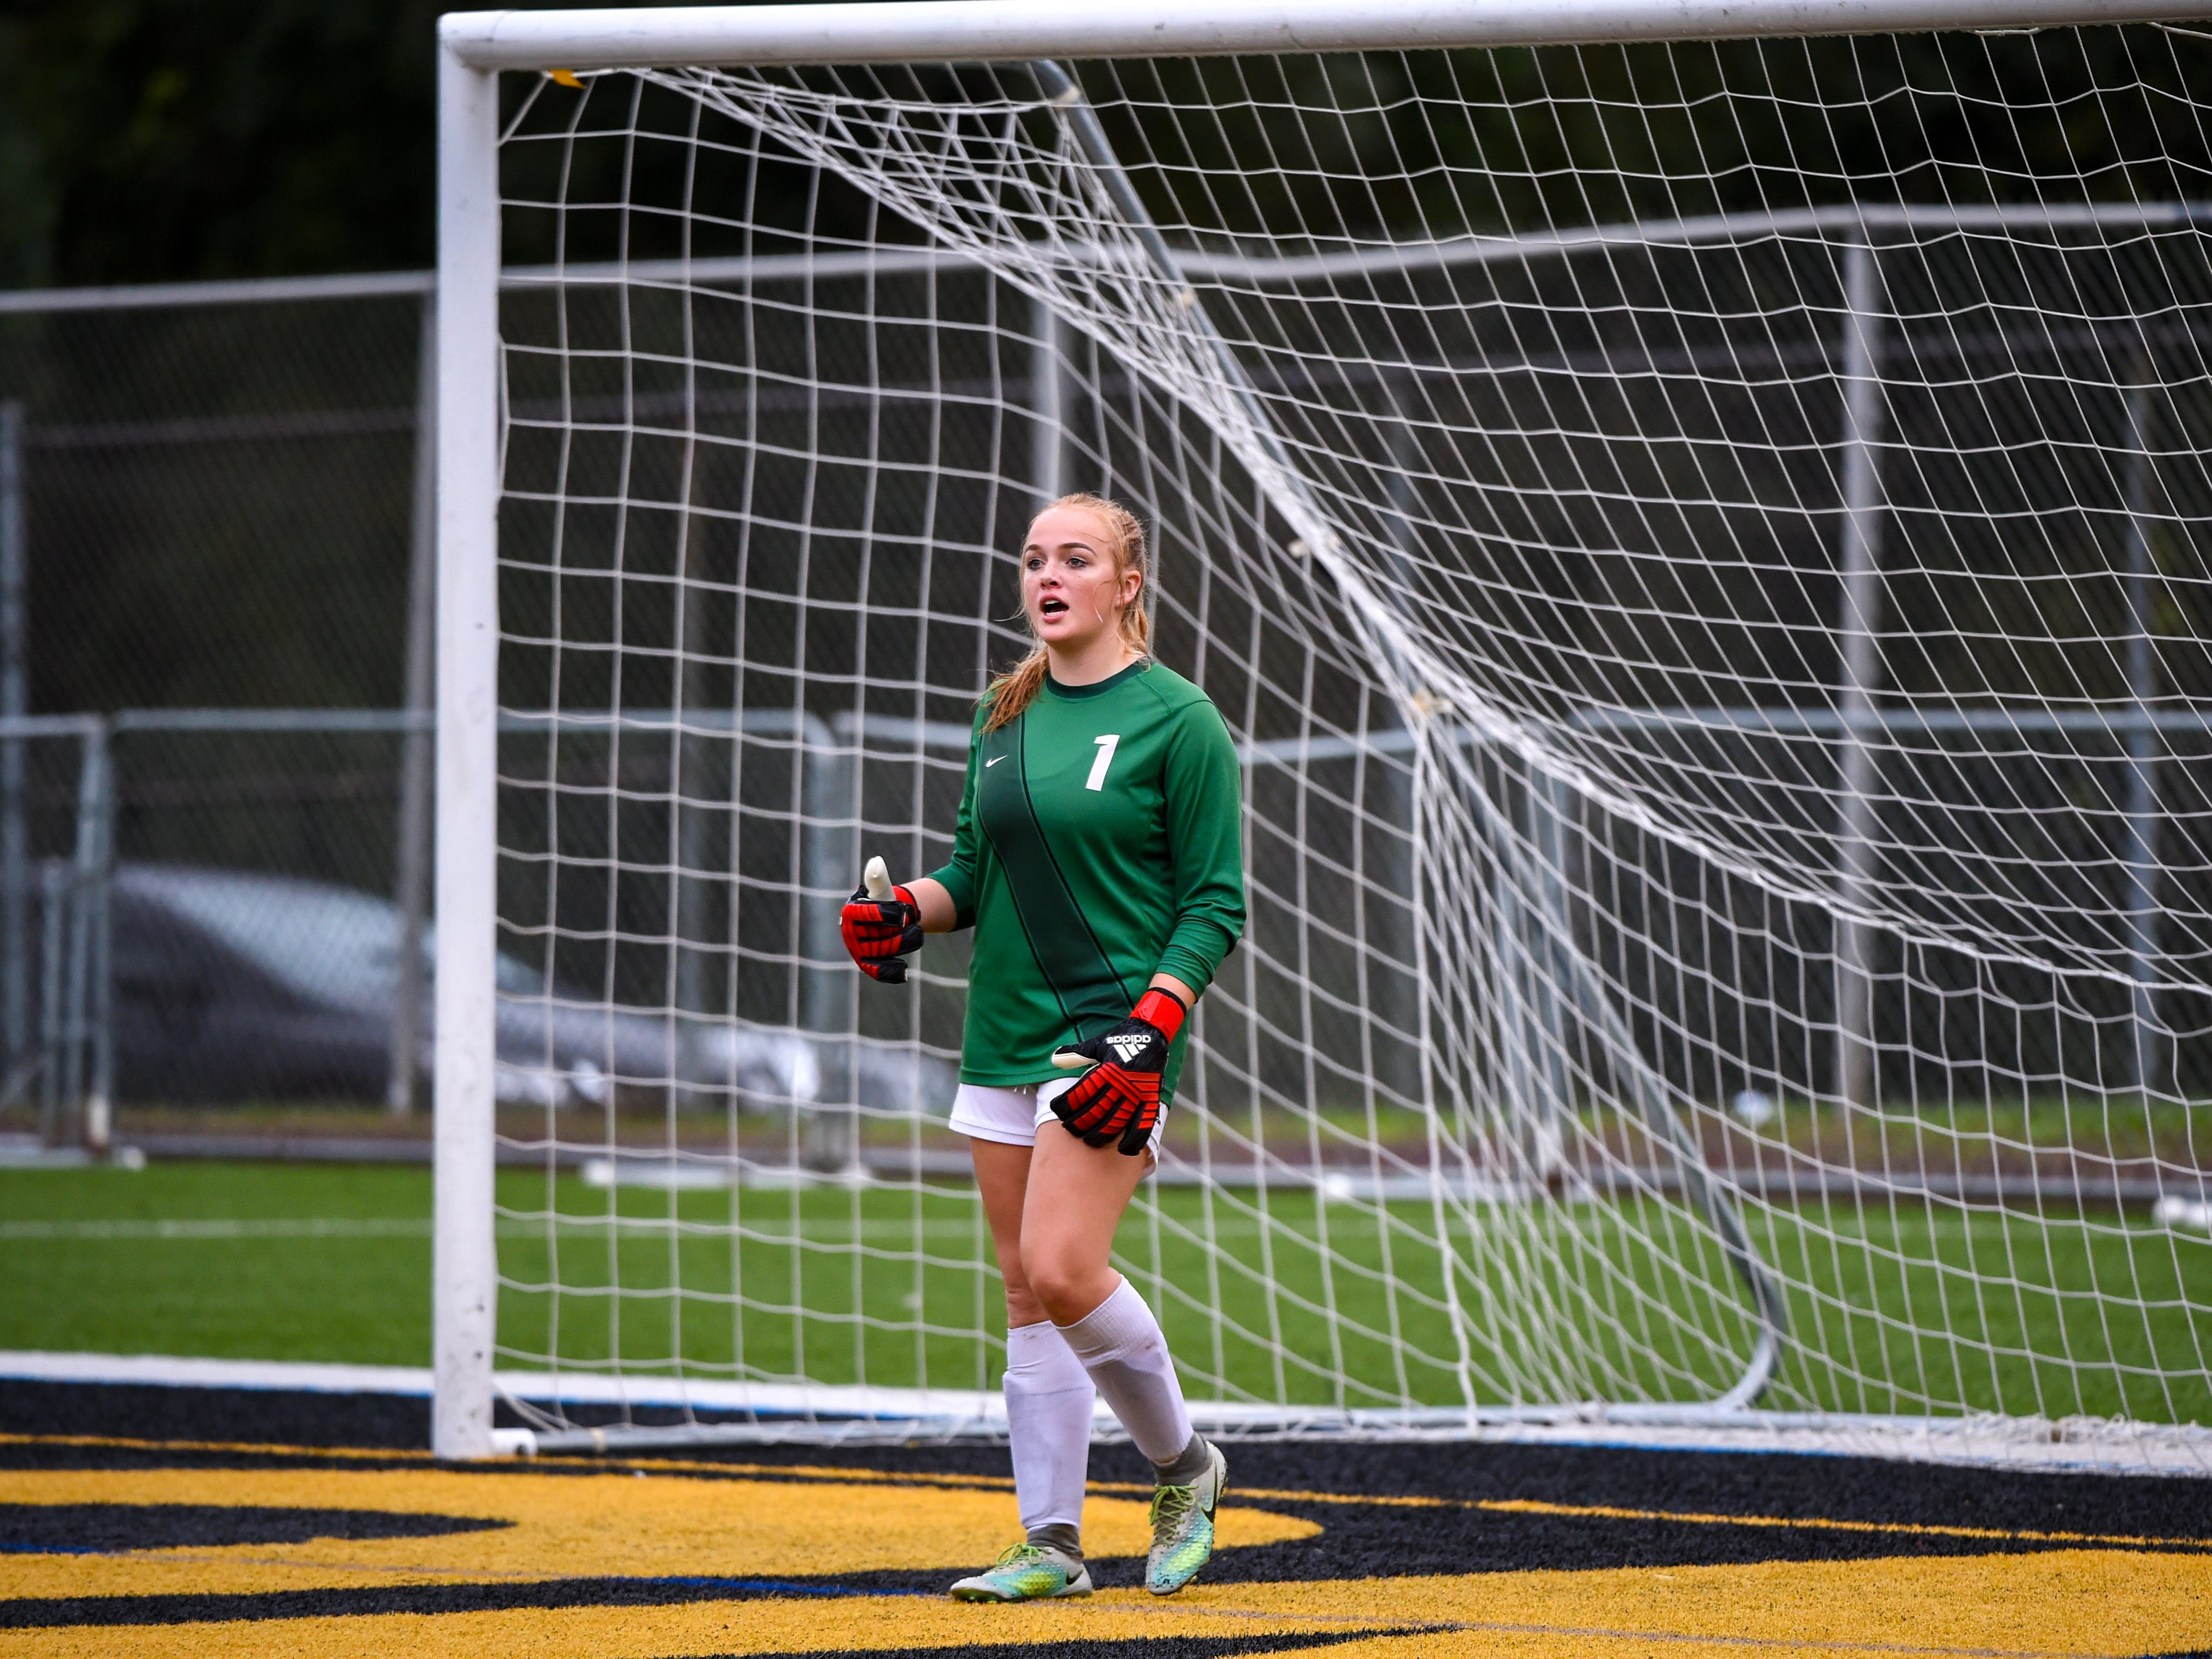 Dallastown's Ashley Wakeling (1) communicates with her teammates during the girls soccer game between Red Lion and Dallastown, October 11, 2018. The Lady Lions beat the Wildcats 4-0.